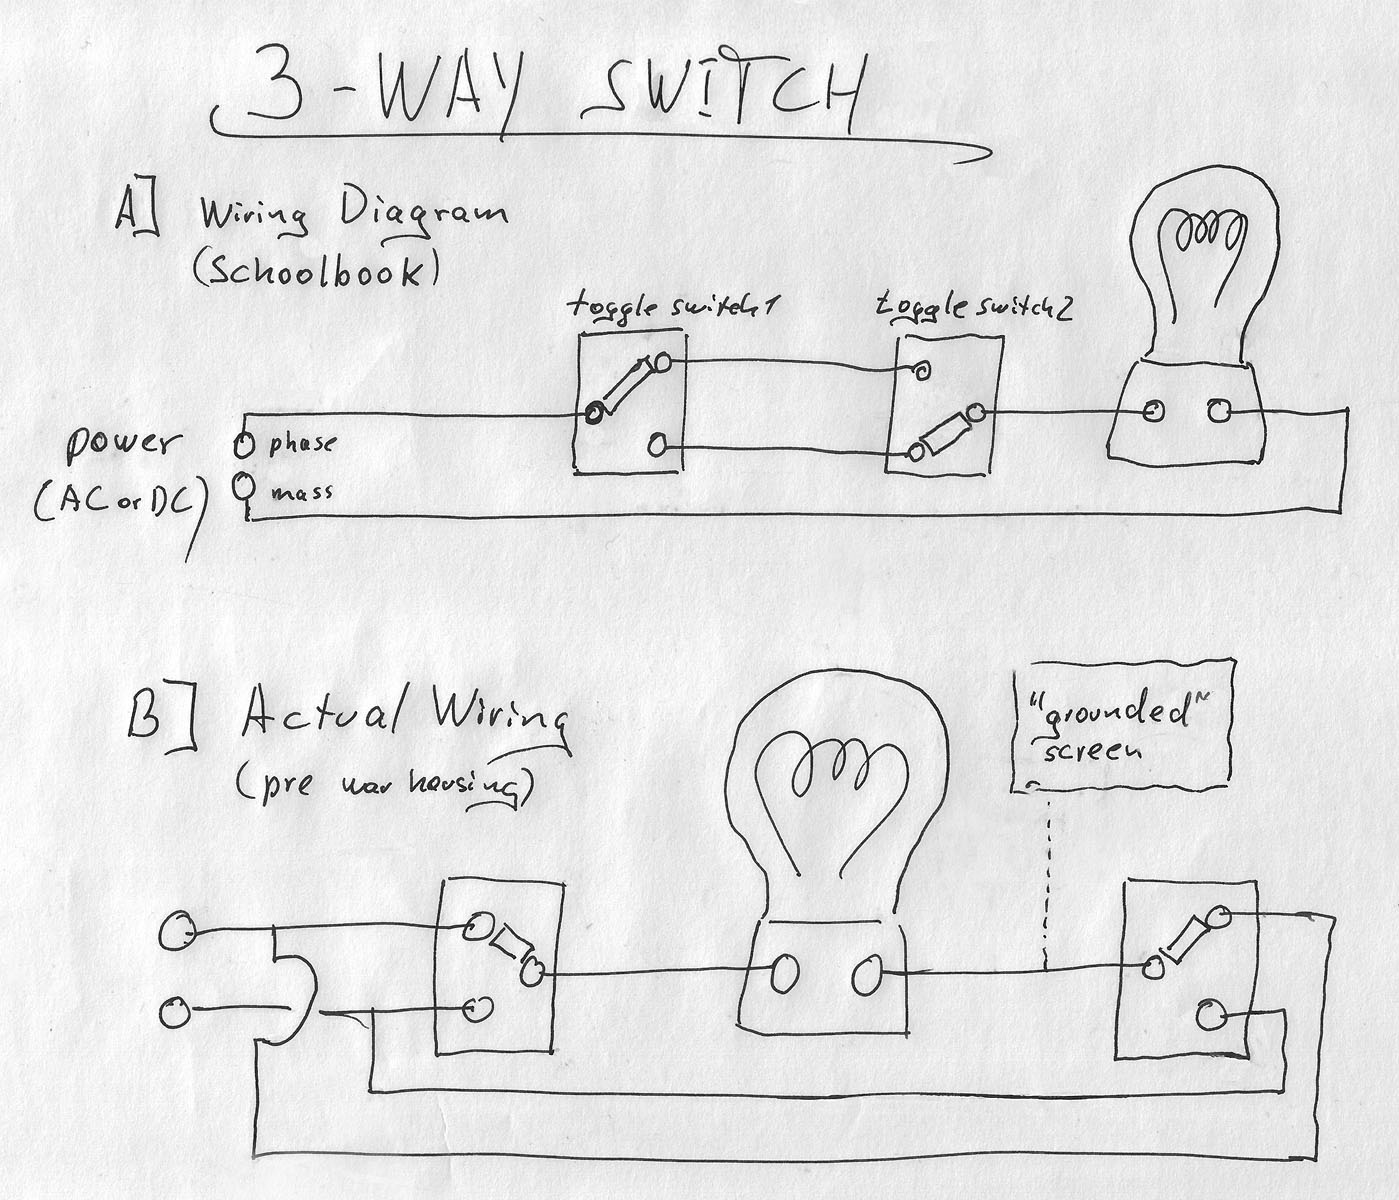 wiring diagram diagrams 718358 switchboard wiring diagram electrical wiring simple switchboard wiring diagram at bakdesigns.co